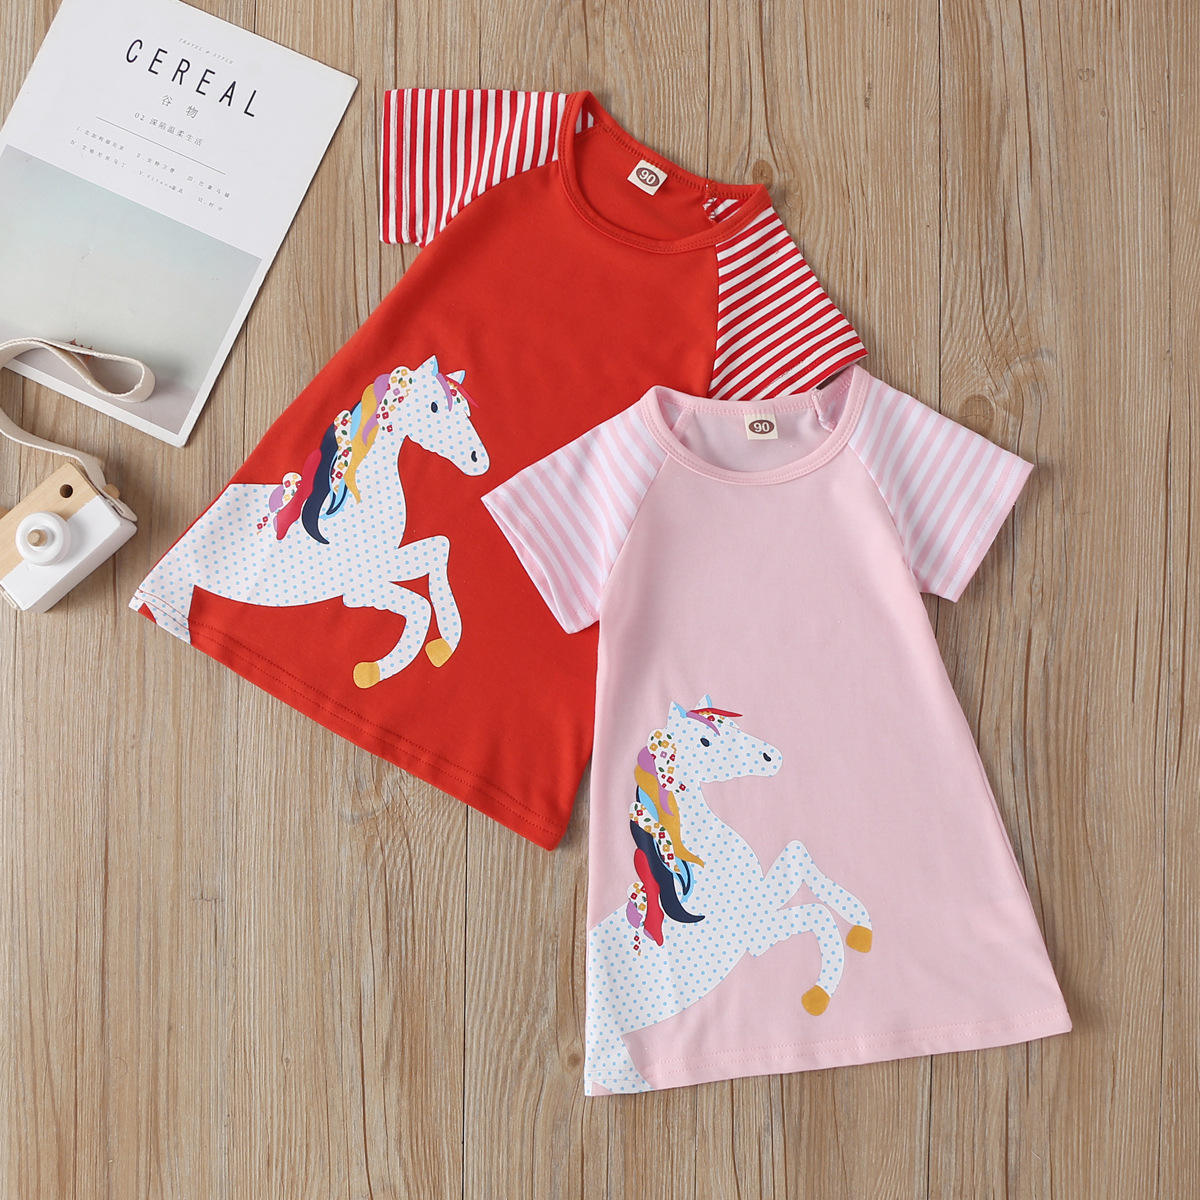 2020 Toddler Dresses for Girls Clothes Brand Cotton Christmas Princess Dress Unicorn Kids Dresses Children Clothing